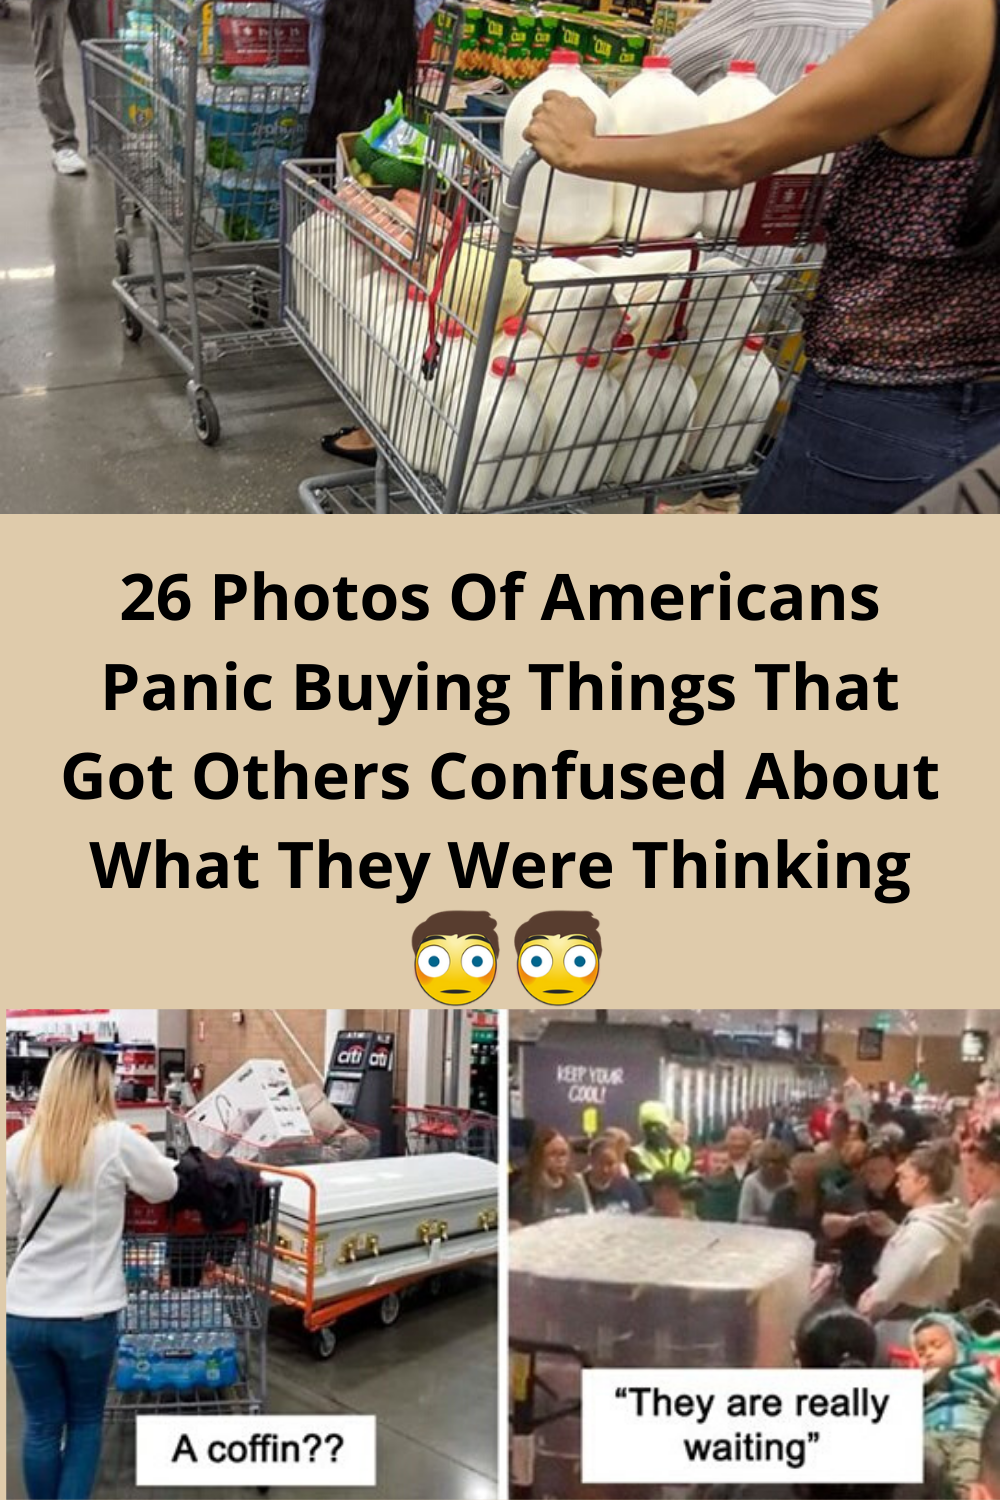 26 Photos Of Americans Panic Buying Things That Got Others